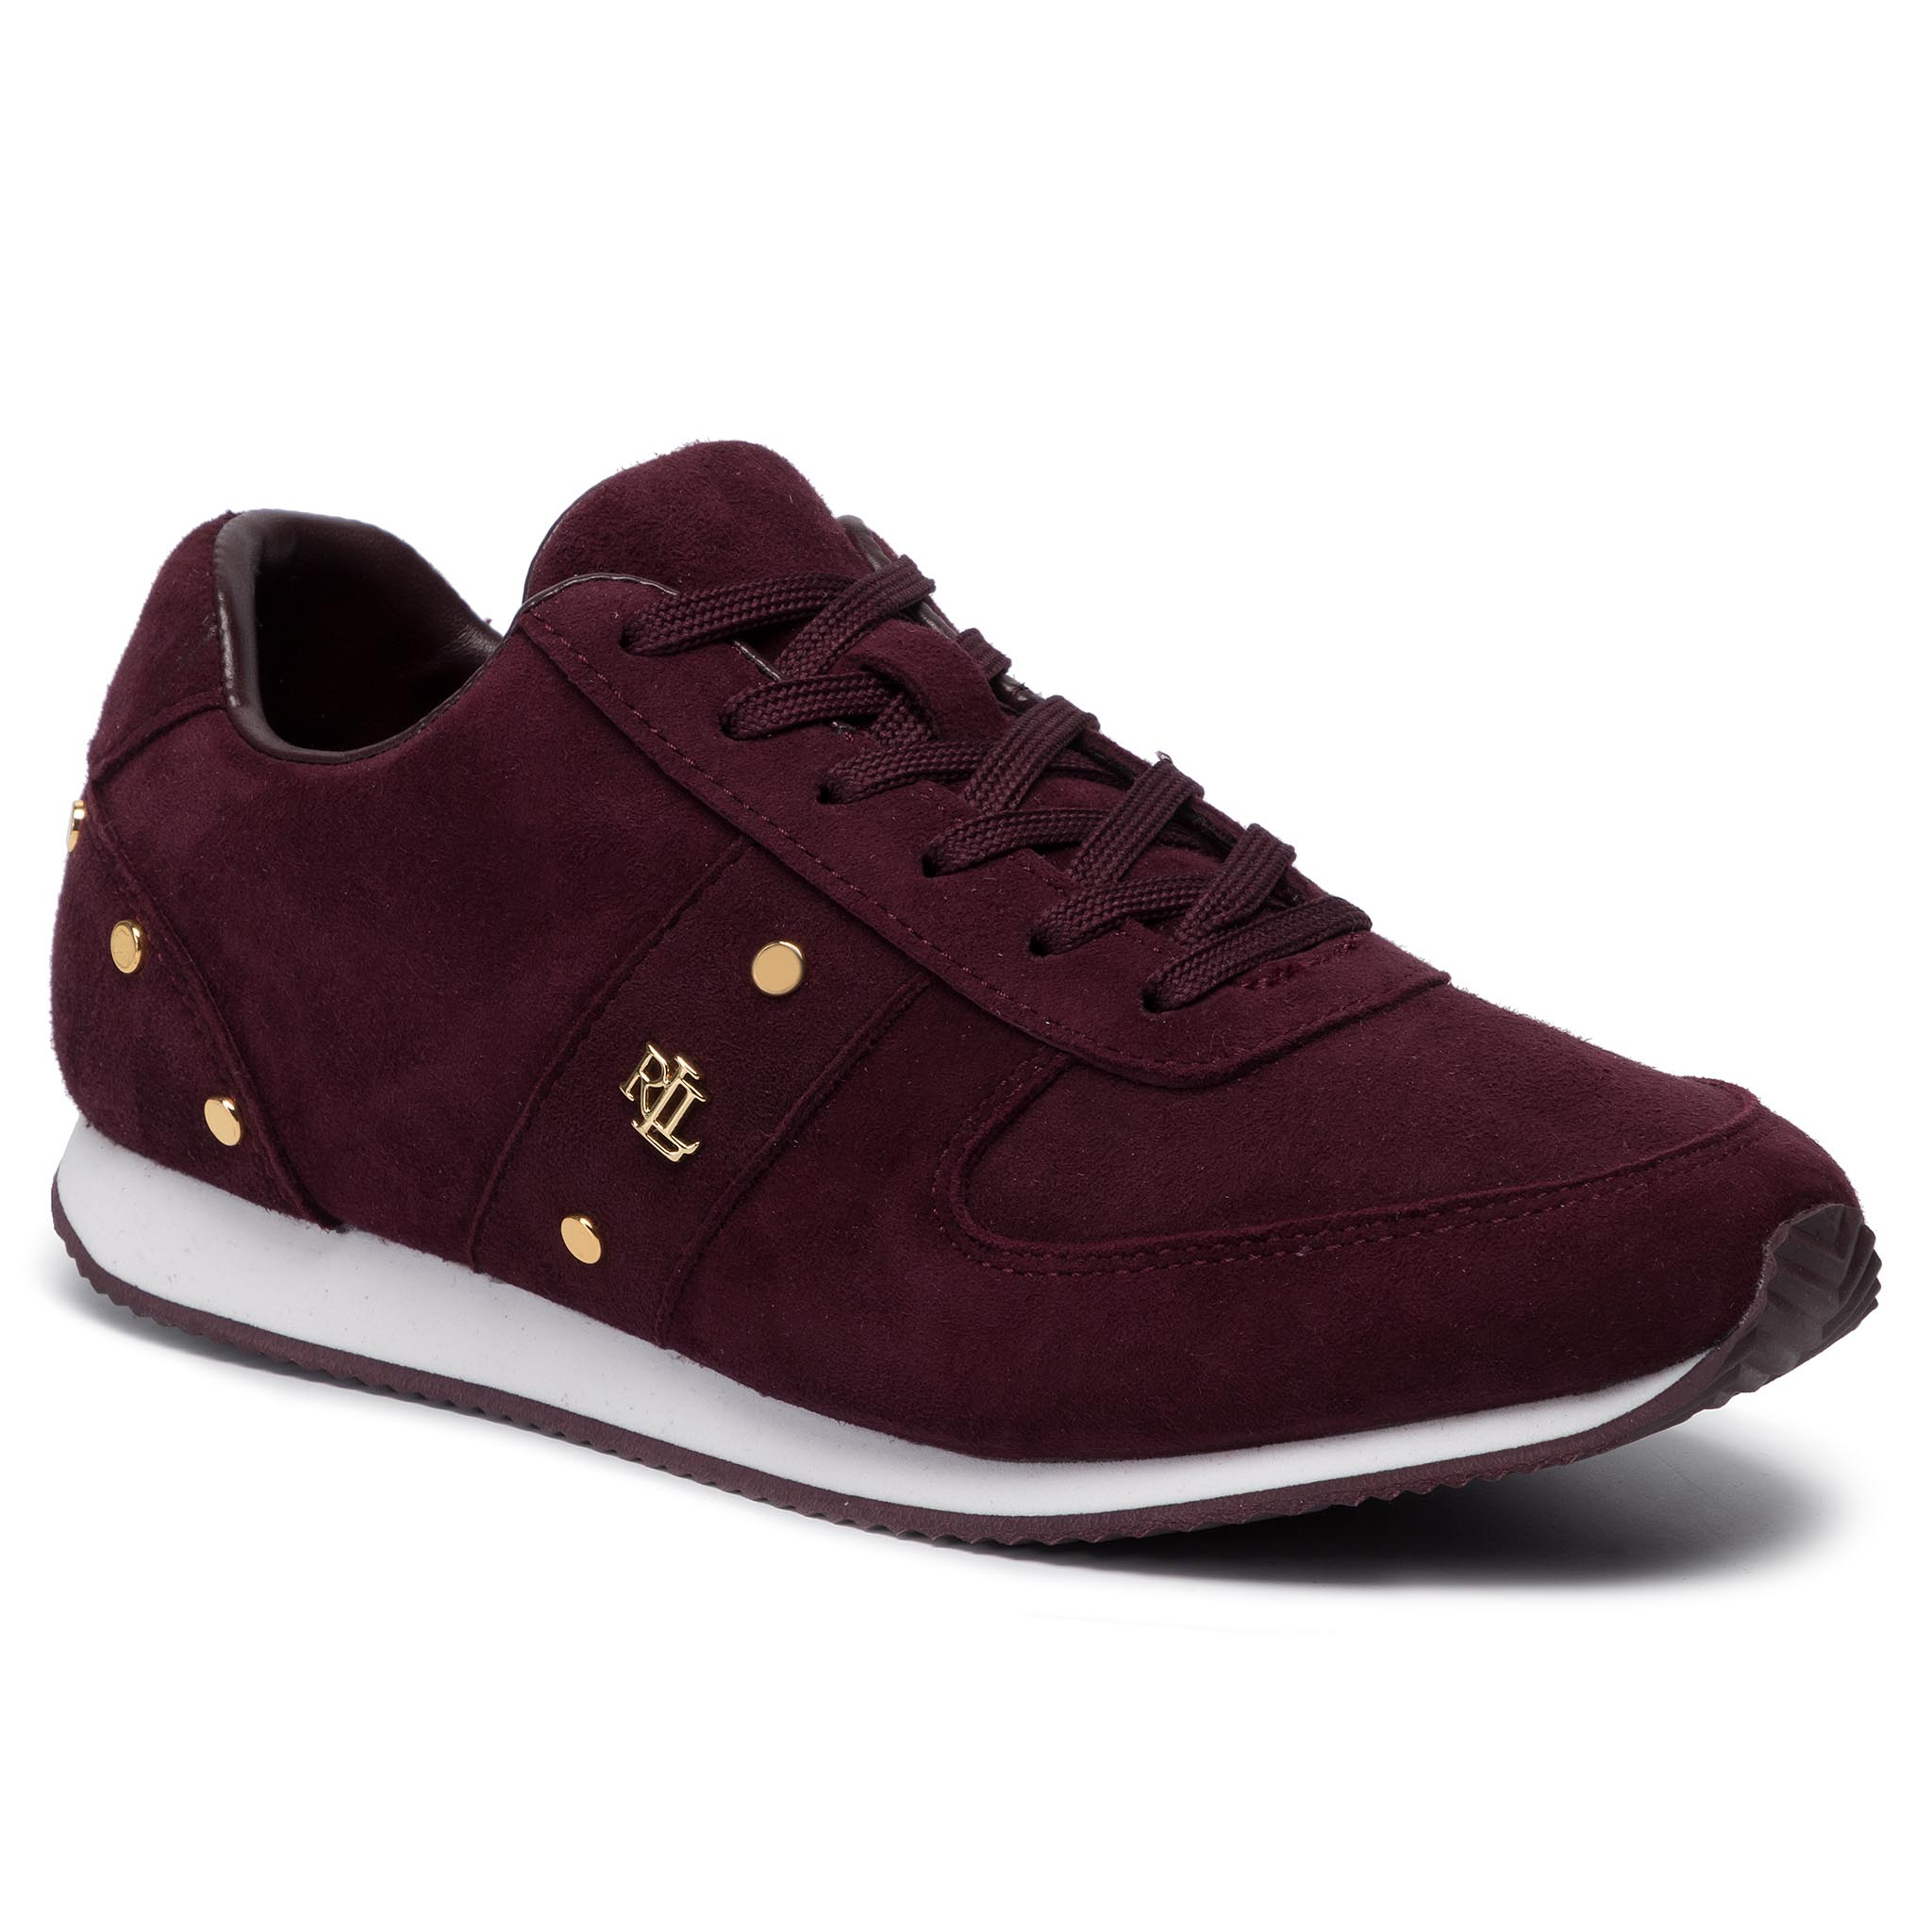 Sneakers LAUREN RALPH LAUREN - Canonbury 802764484002 Bordeaux